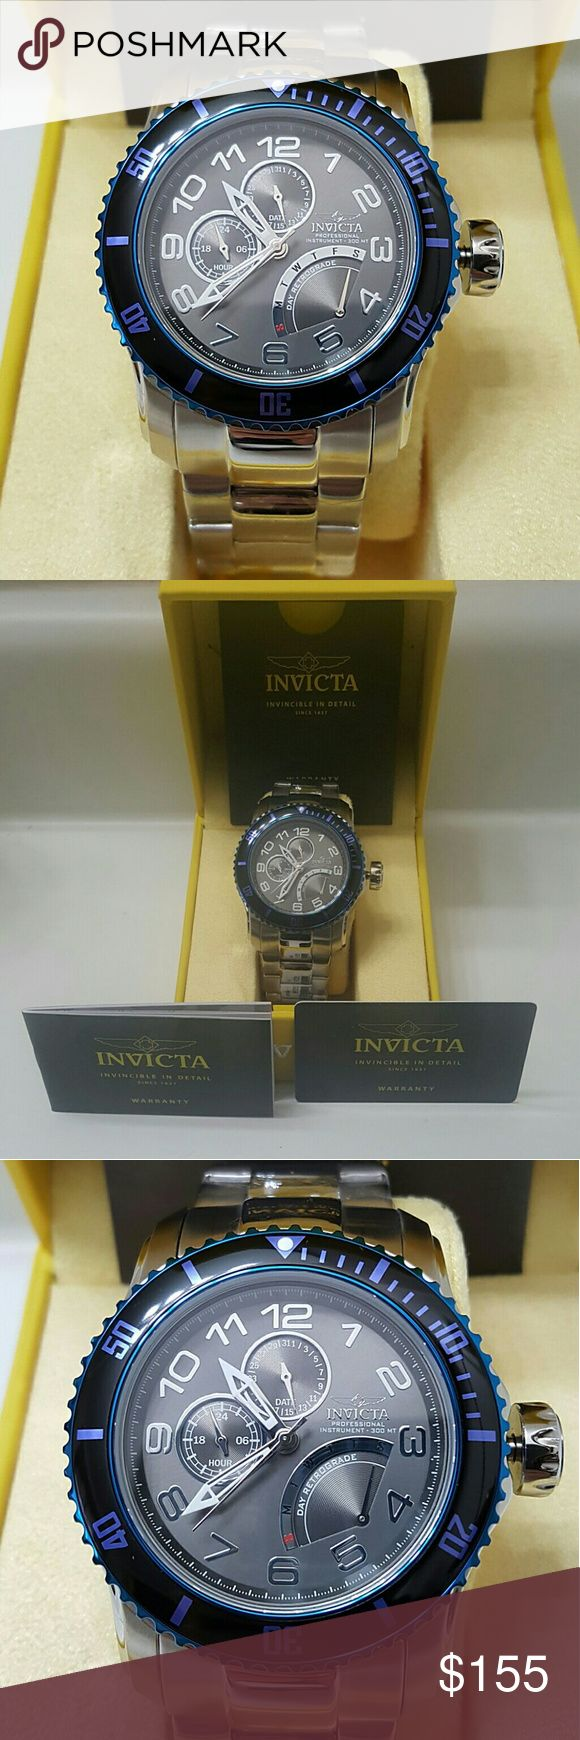 Wednesday sale,$1,000 Invicta watch. (firm price) Brand NWT Invicta unique men's 12 and 24 hours Men's Watch   Firm price firm price firm price firm price   $155.00 . AUTHENTIC WATCH  . AUTHENTIC BOX  . AUTHENTIC MANUAL    SHIPPING  PLEASE ALLOW FEW BUSINESS DAYS FOR ME TO SHIPPED IT OFF.I HAVE TO GET IT FROM MY STORE.    THANK YOU FOR YOUR UNDERSTANDING Invicta Accessories Watches